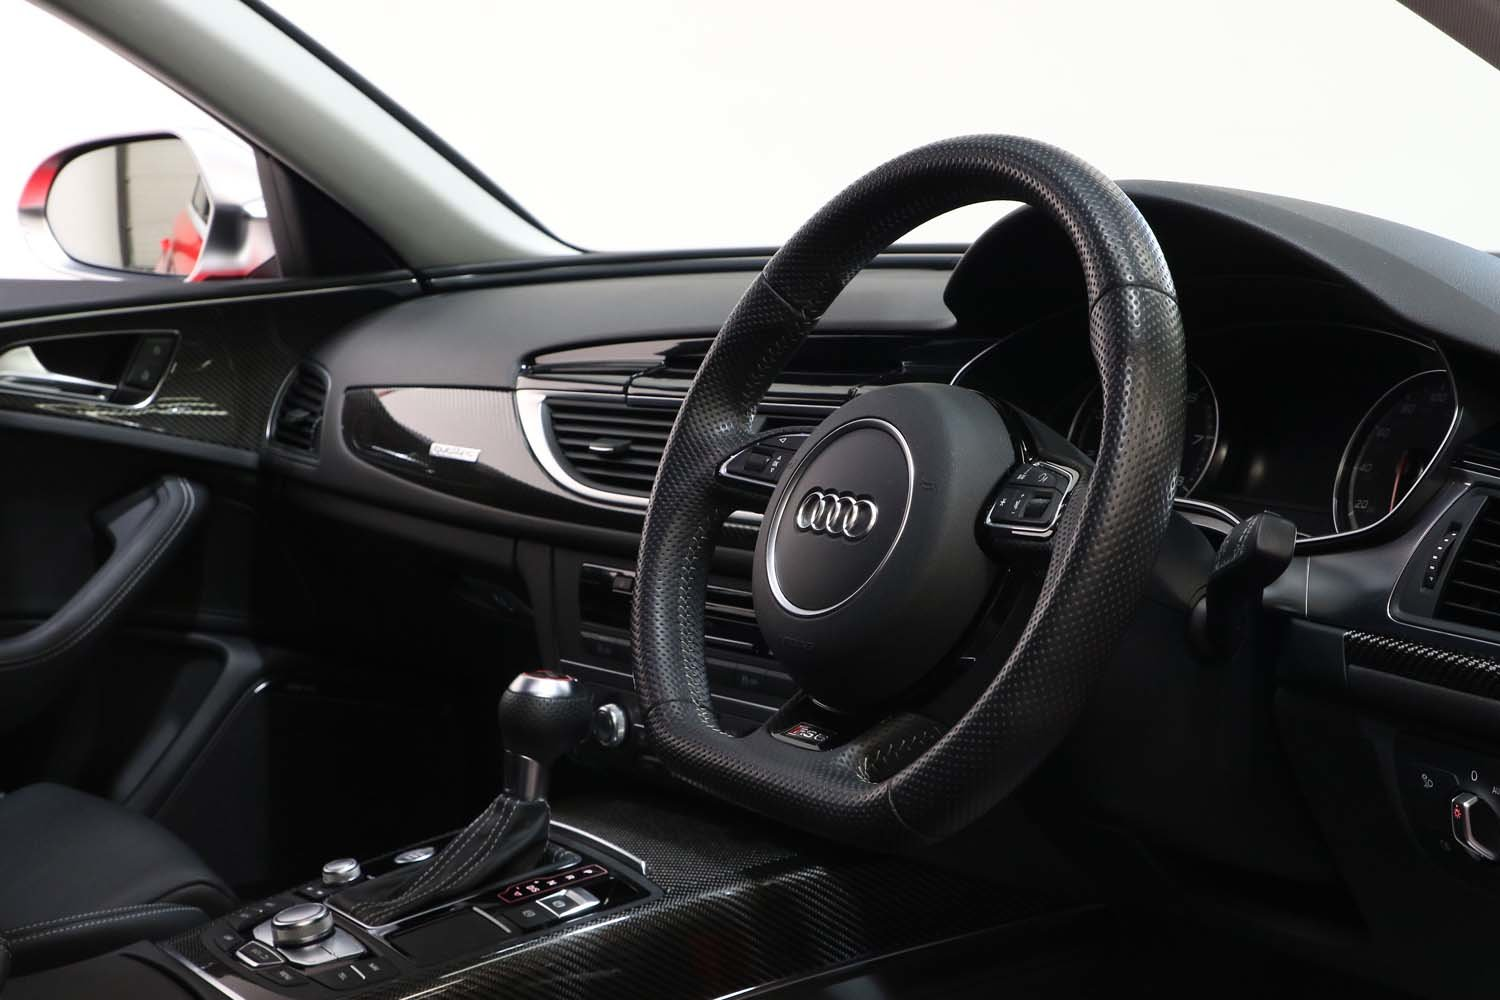 2014 14 64 AUDI RS6 AVANT 4.0T V8 FSI AUTO For Sale (picture 5 of 6)